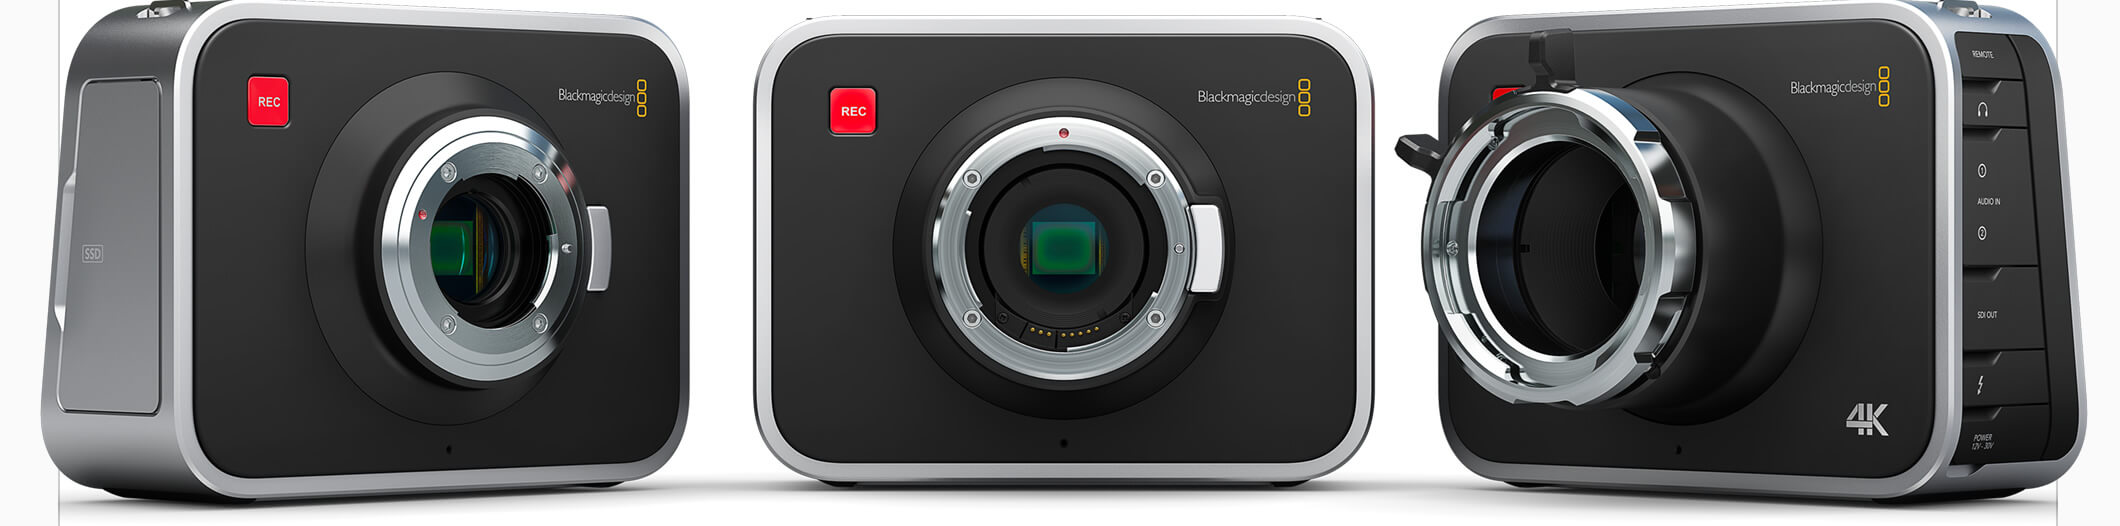 rental camera packs Blackmagic 4 k samyangrokinon